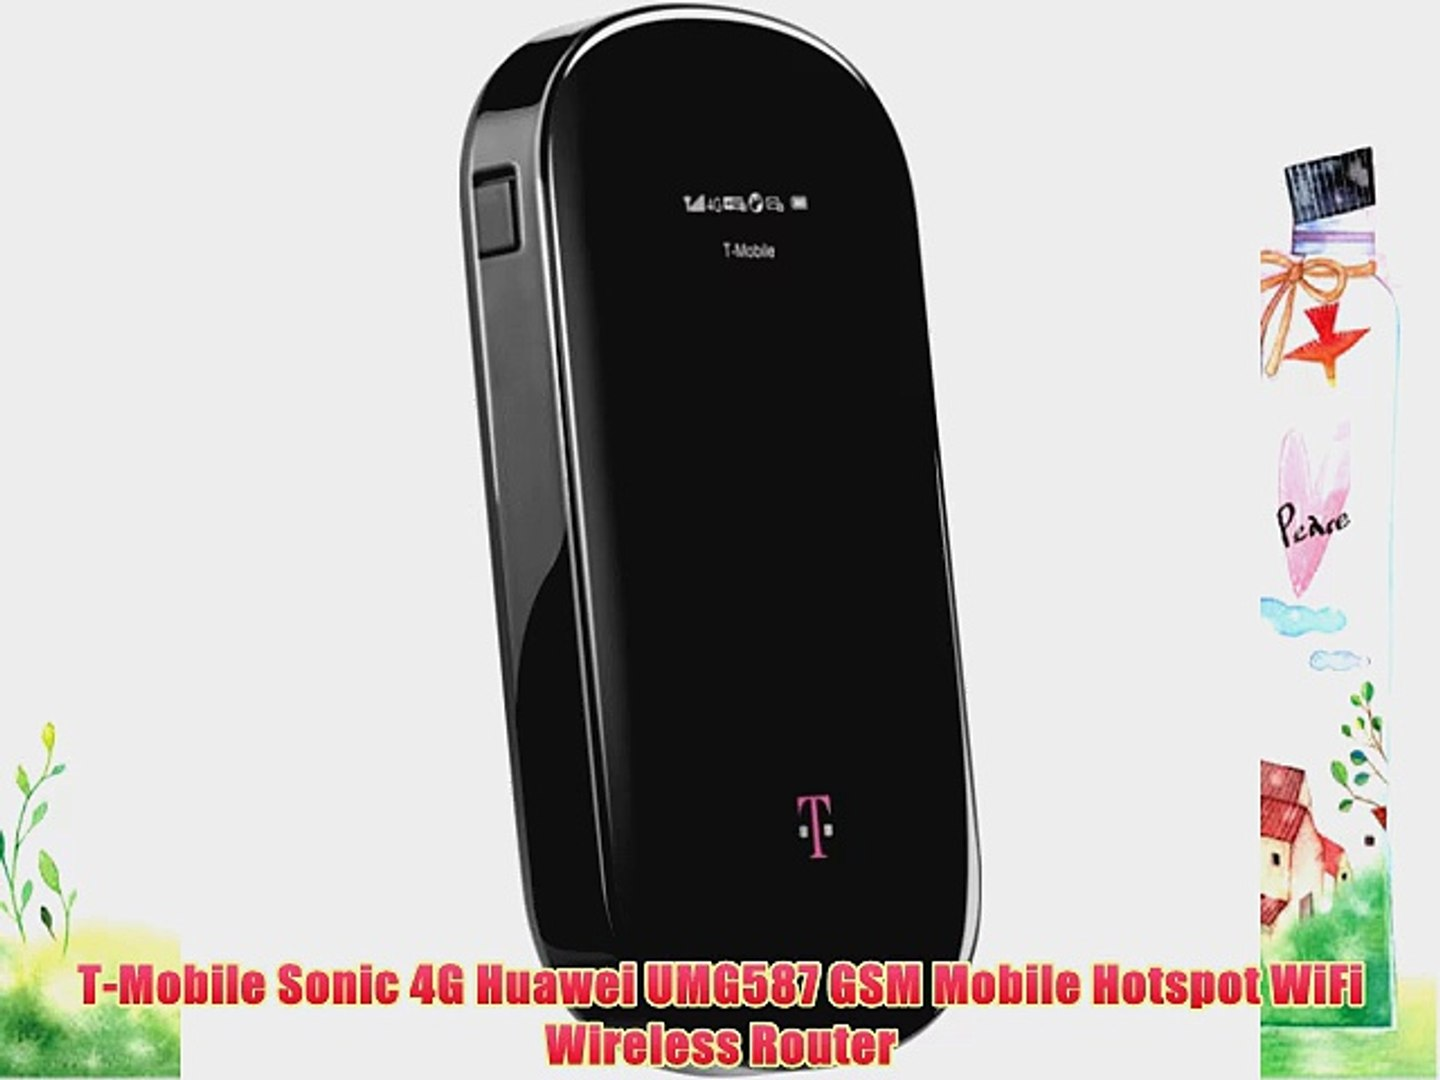 T-Mobile Sonic 4G Huawei UMG587 GSM Mobile Hotspot WiFi Wireless Router